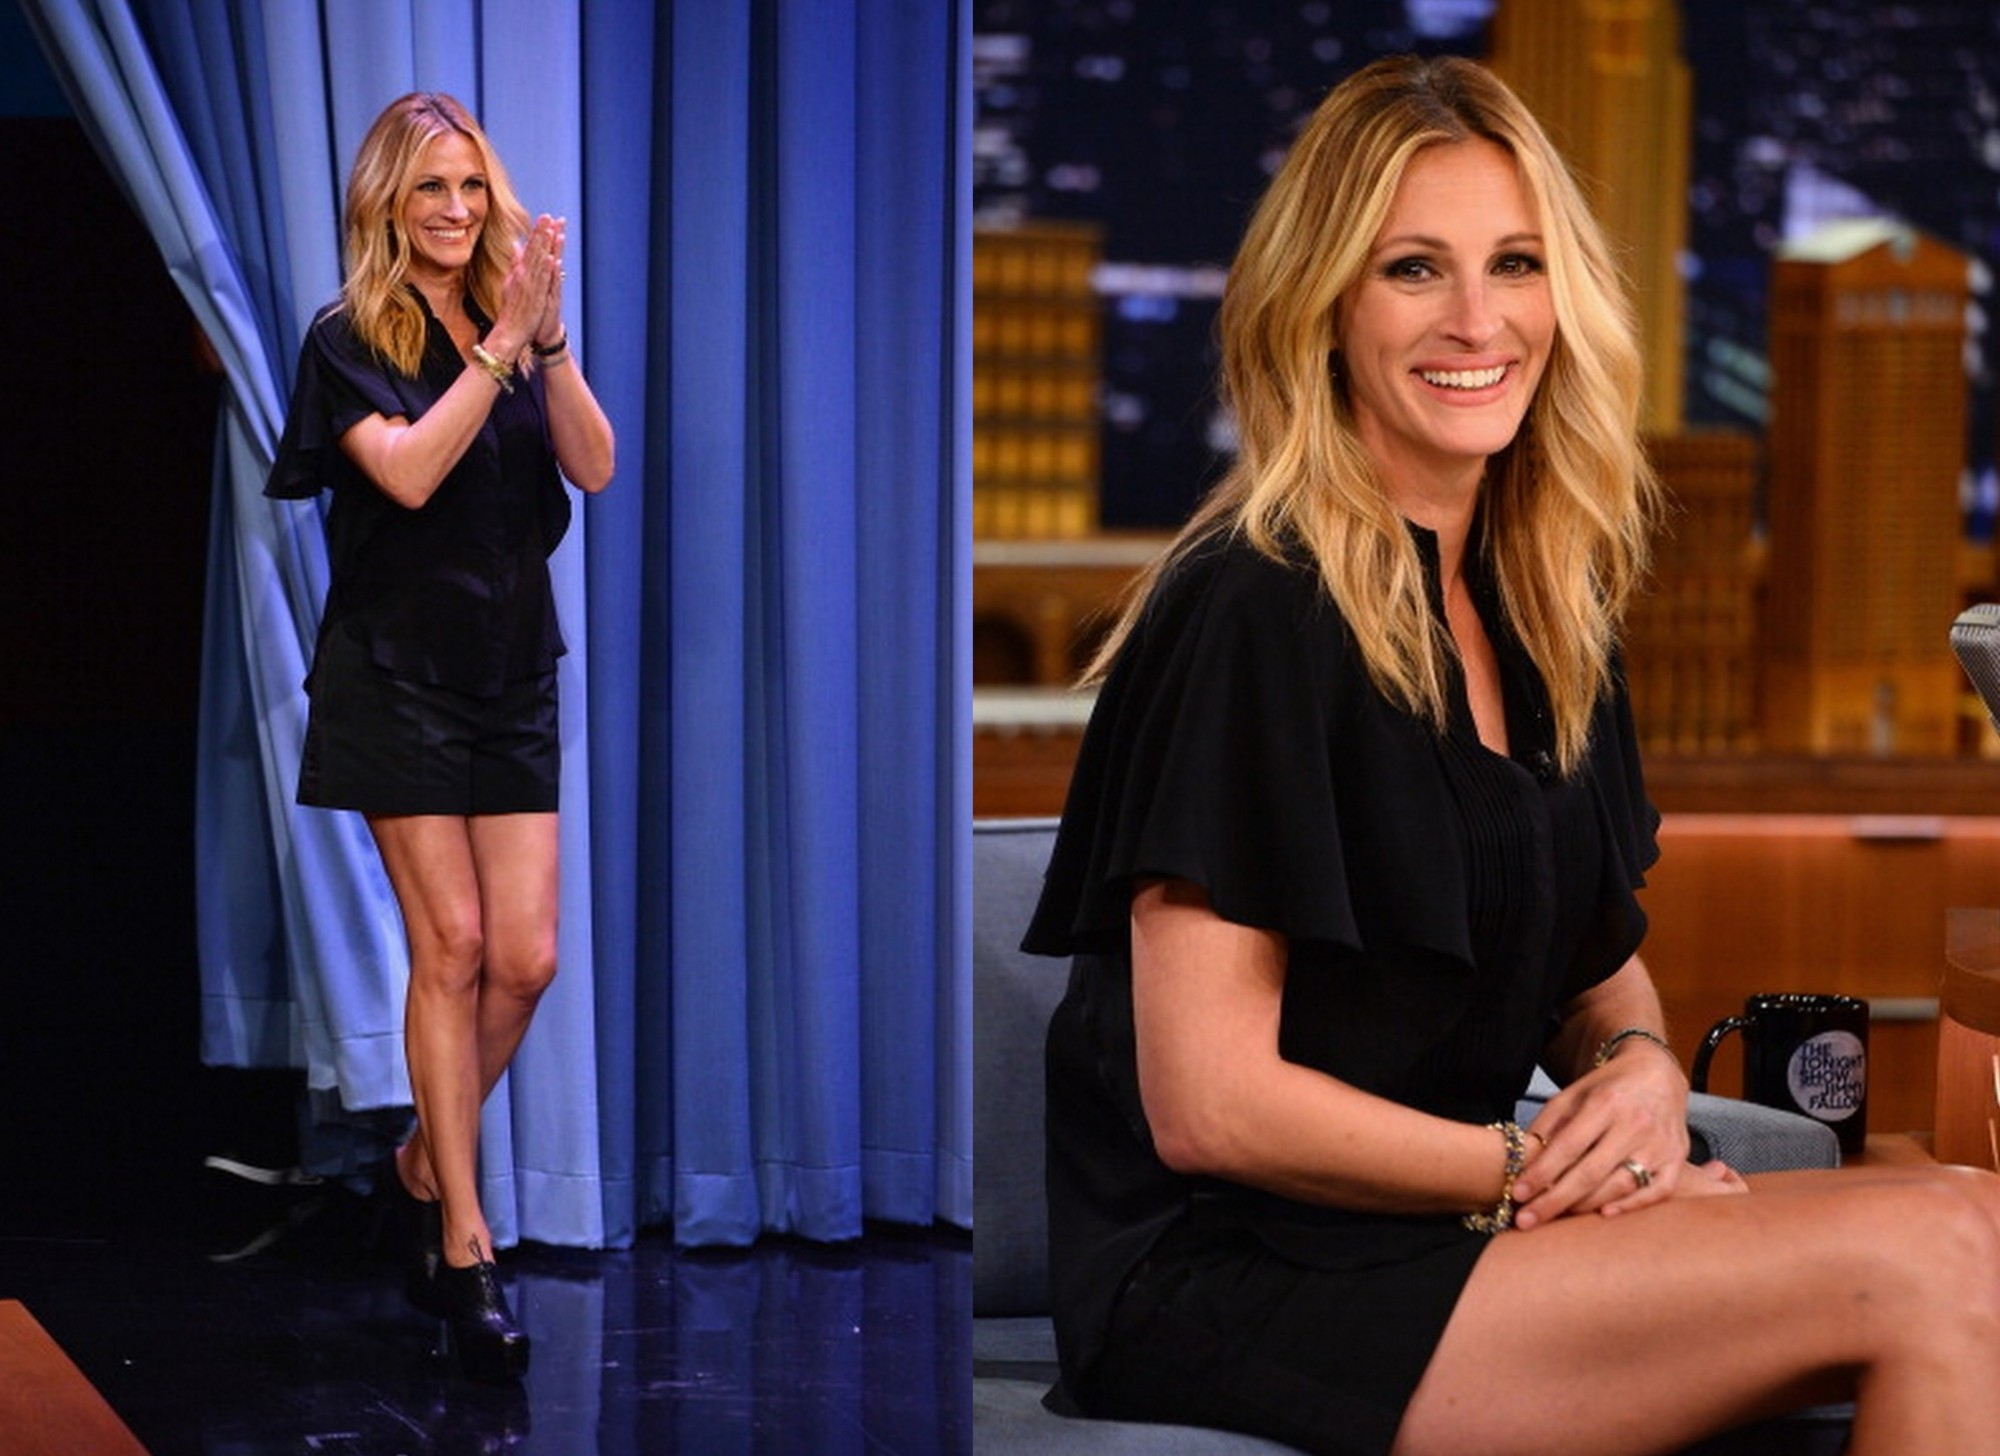 Julia-Roberts-In-Elie-Saab-The-Tonight-Show-Starring-Jimmy-Fallon-e1406874992211